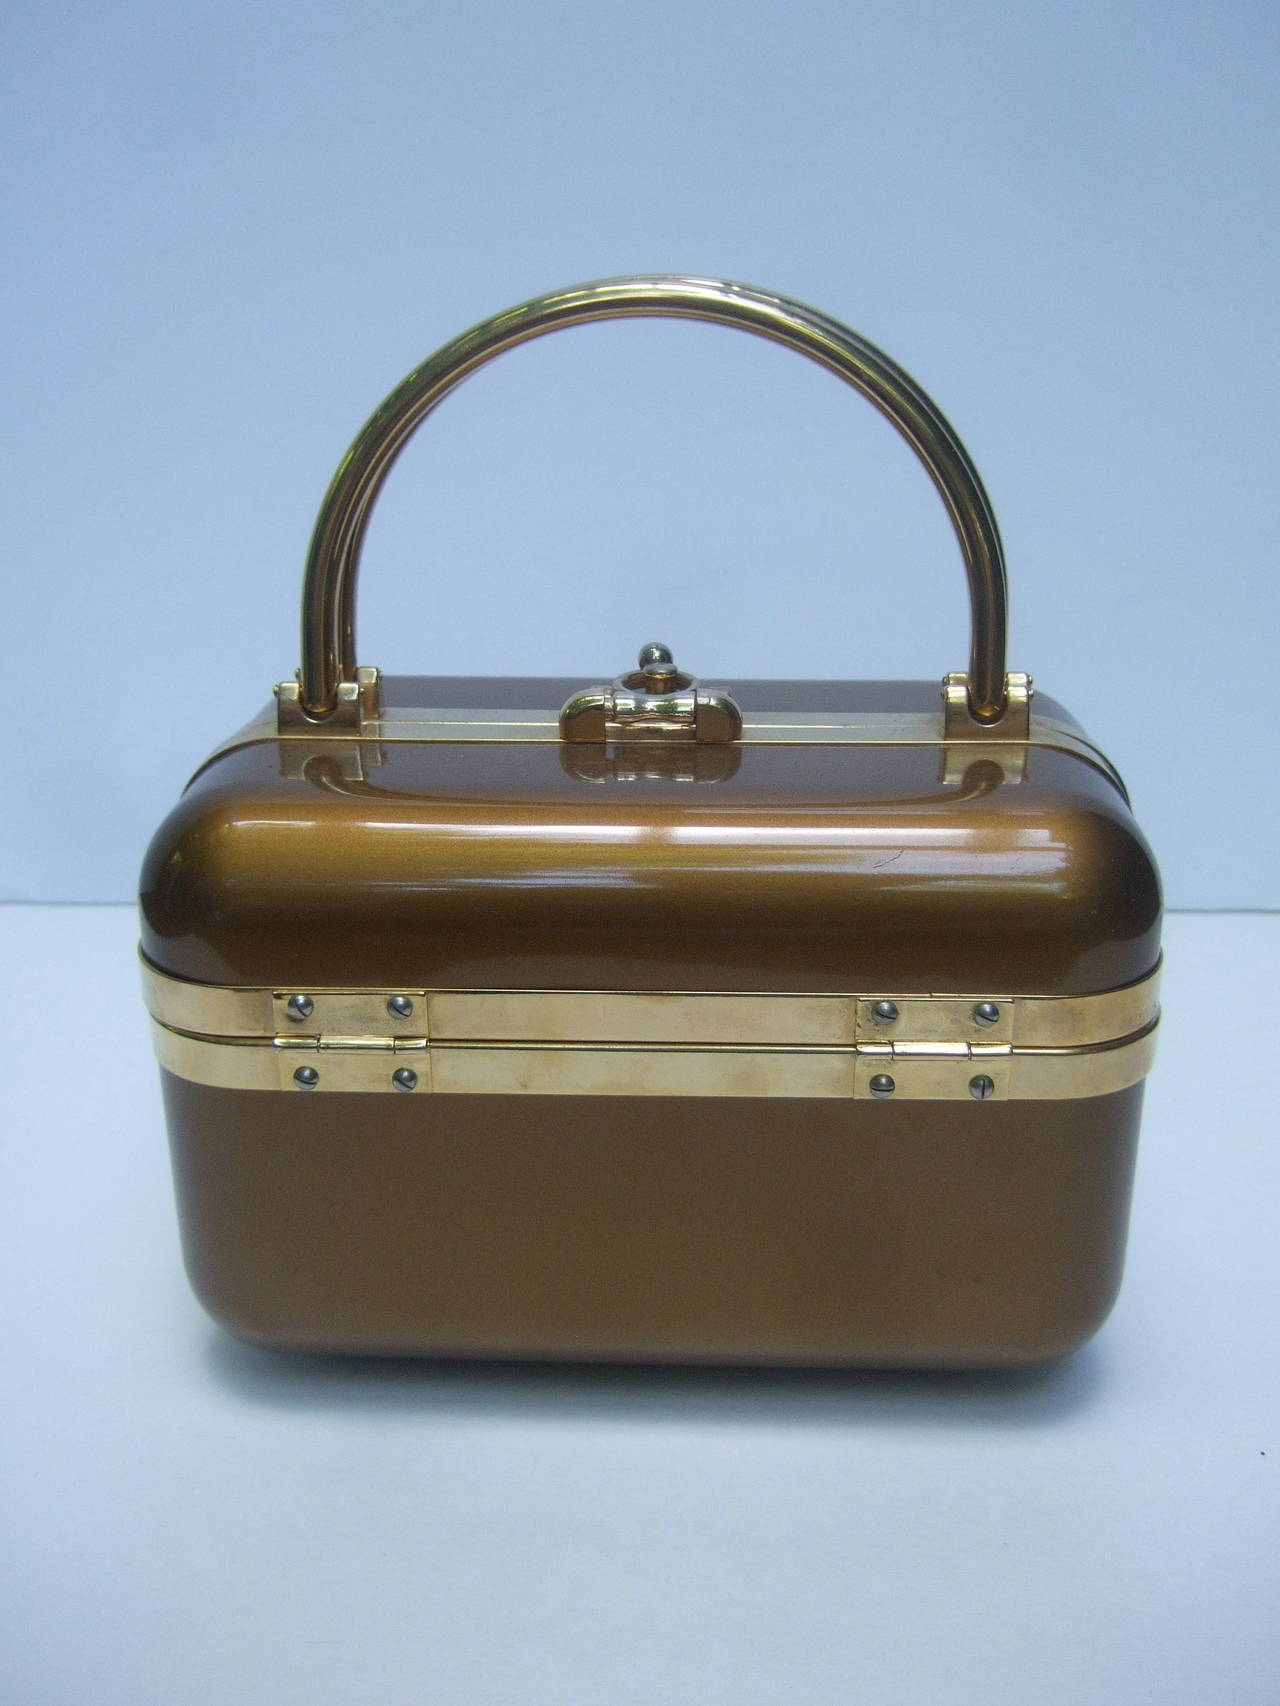 Sleek 1970s Italian Bronze Lucite Handbag Designed by Baulotto In Excellent Condition For Sale In Santa Barbara, CA